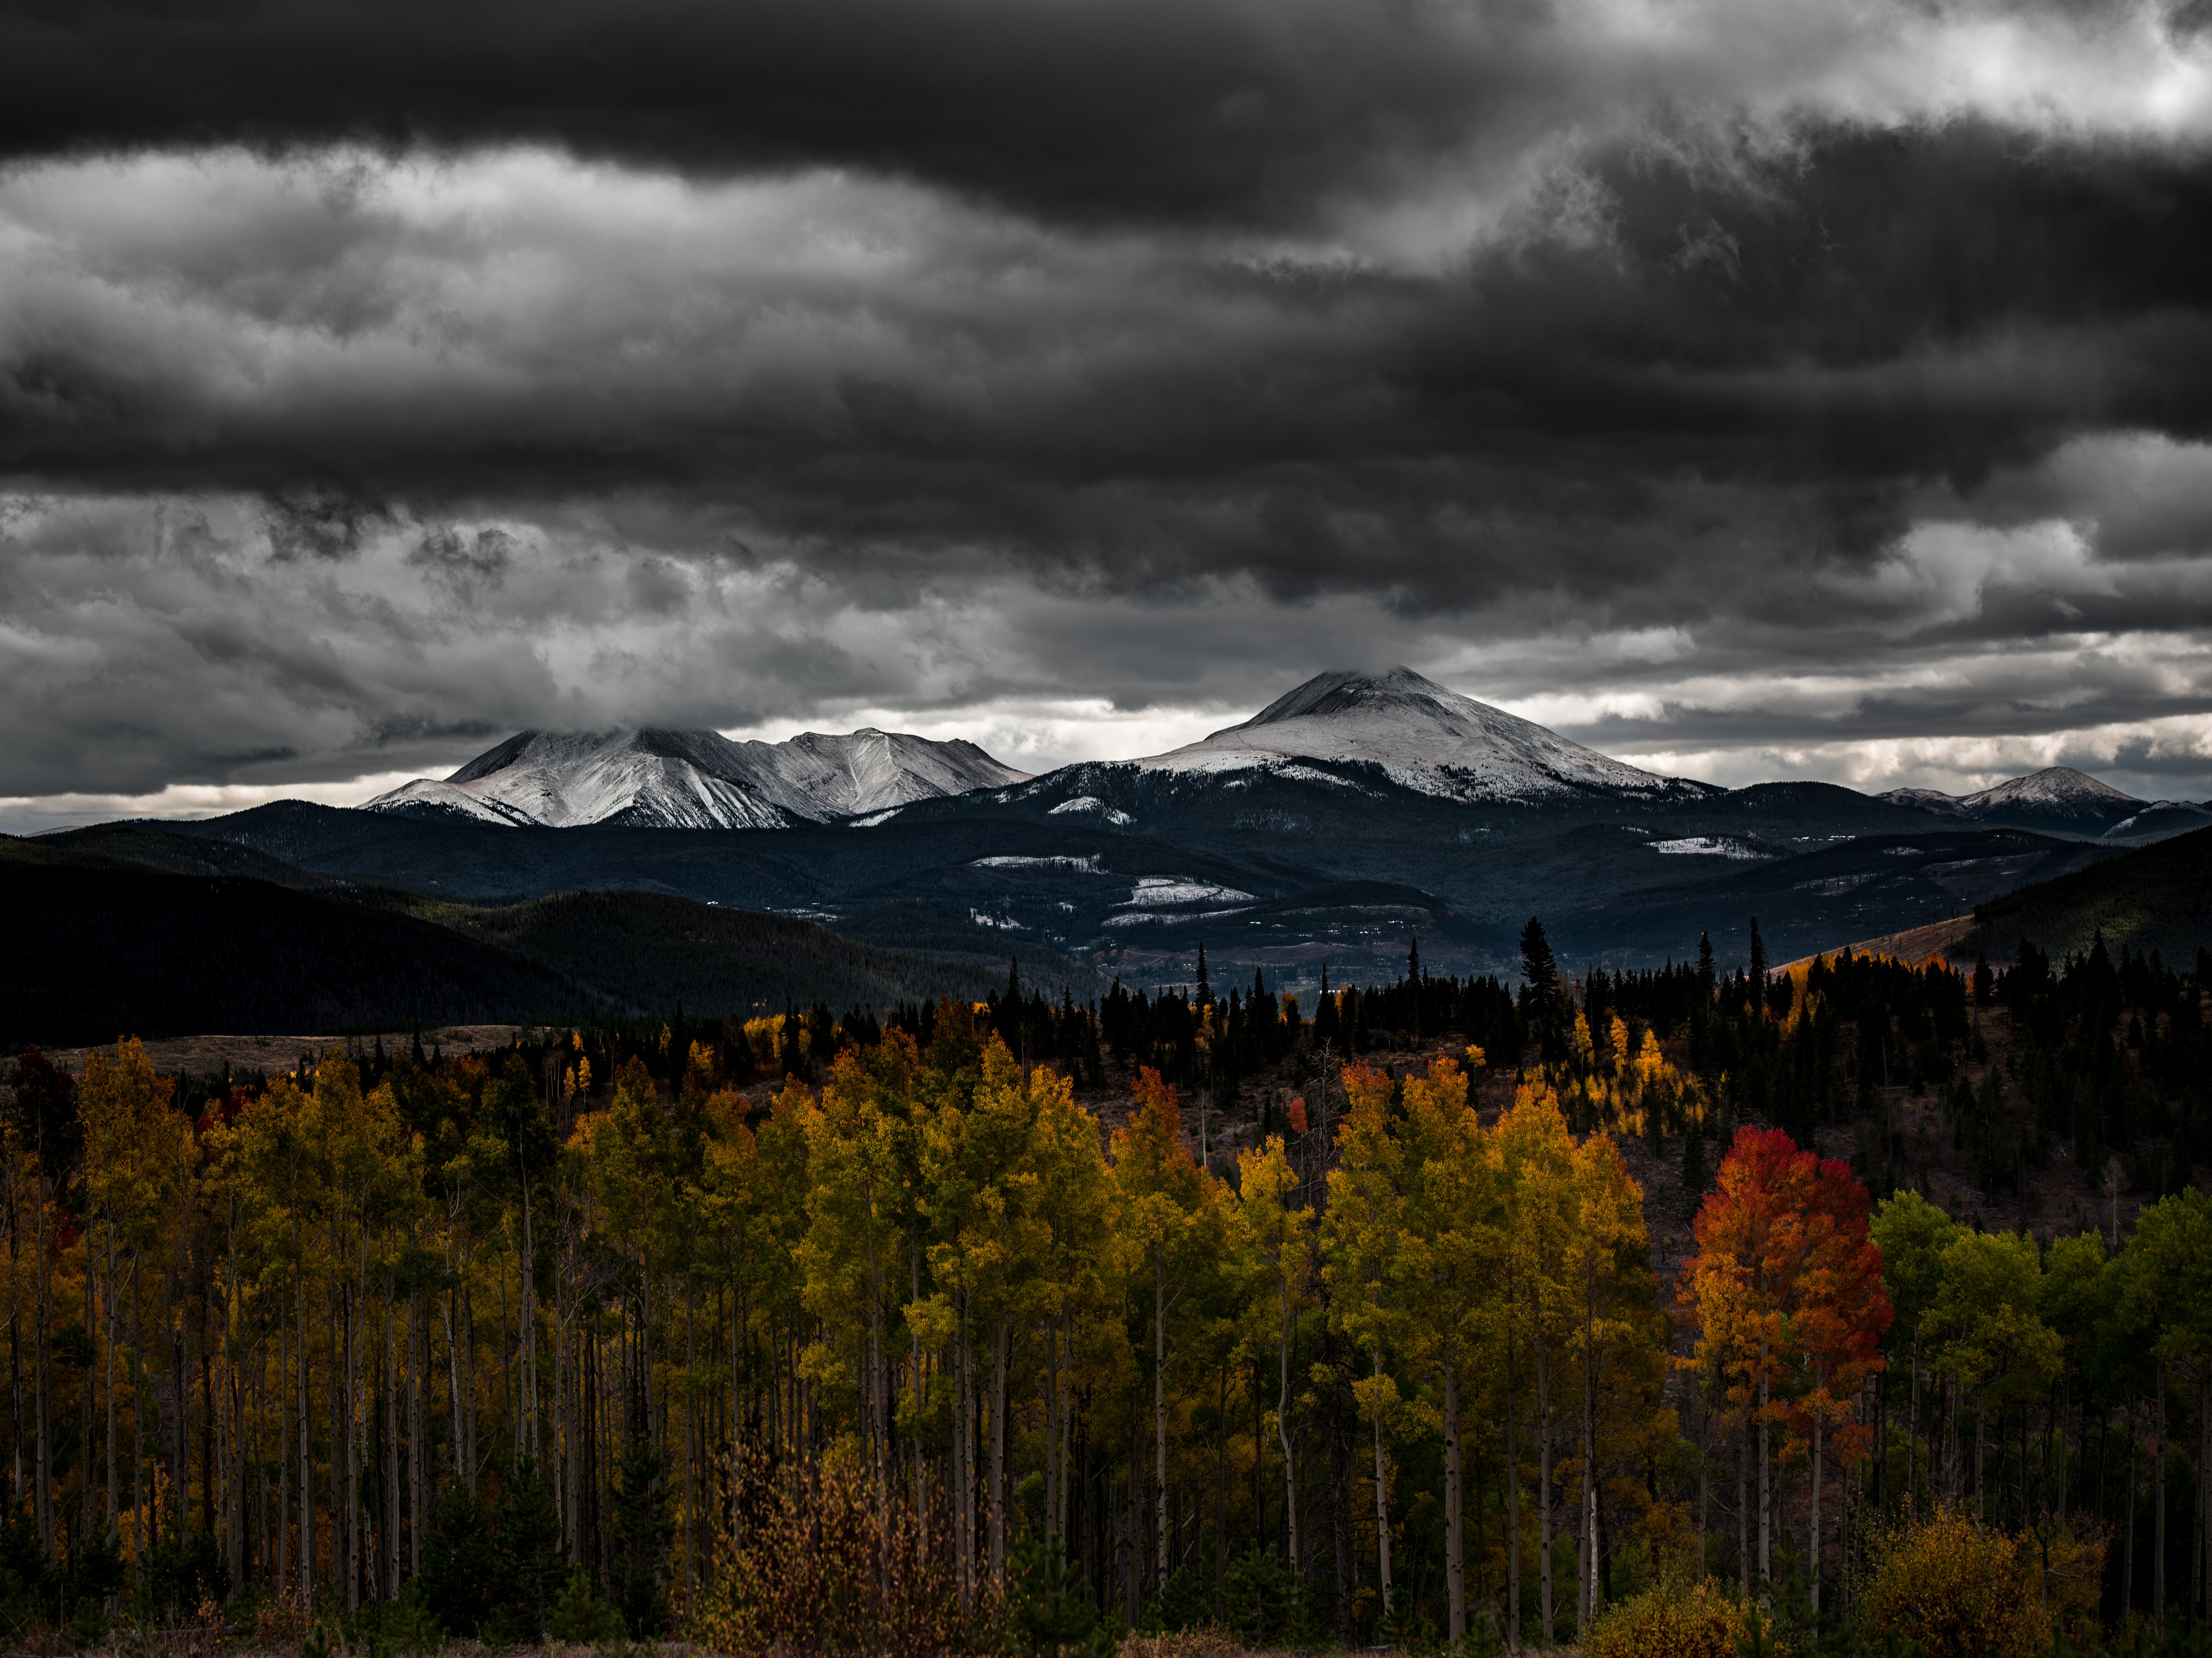 Tall autumn-colored trees and snow-capped mountains on the horizon in Silverthorne